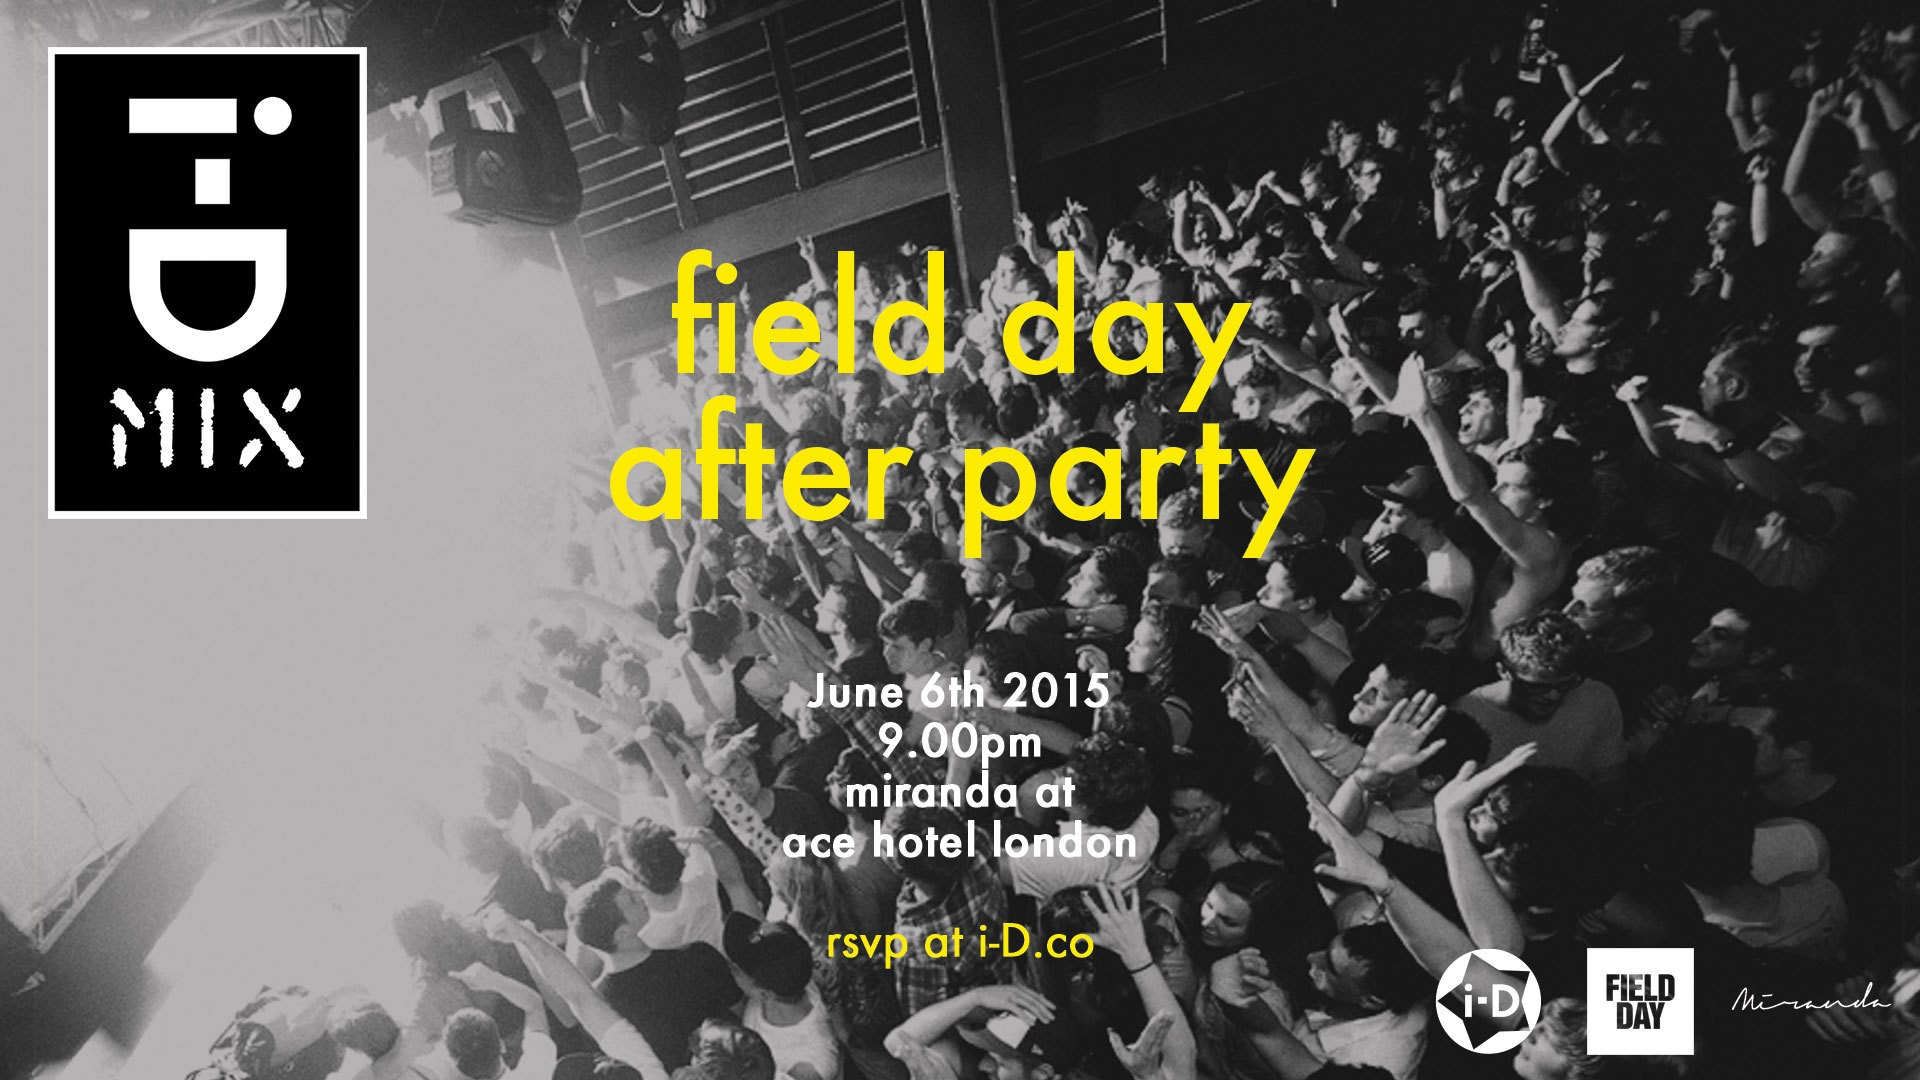 we're throwing the field day after party you'll want to go to